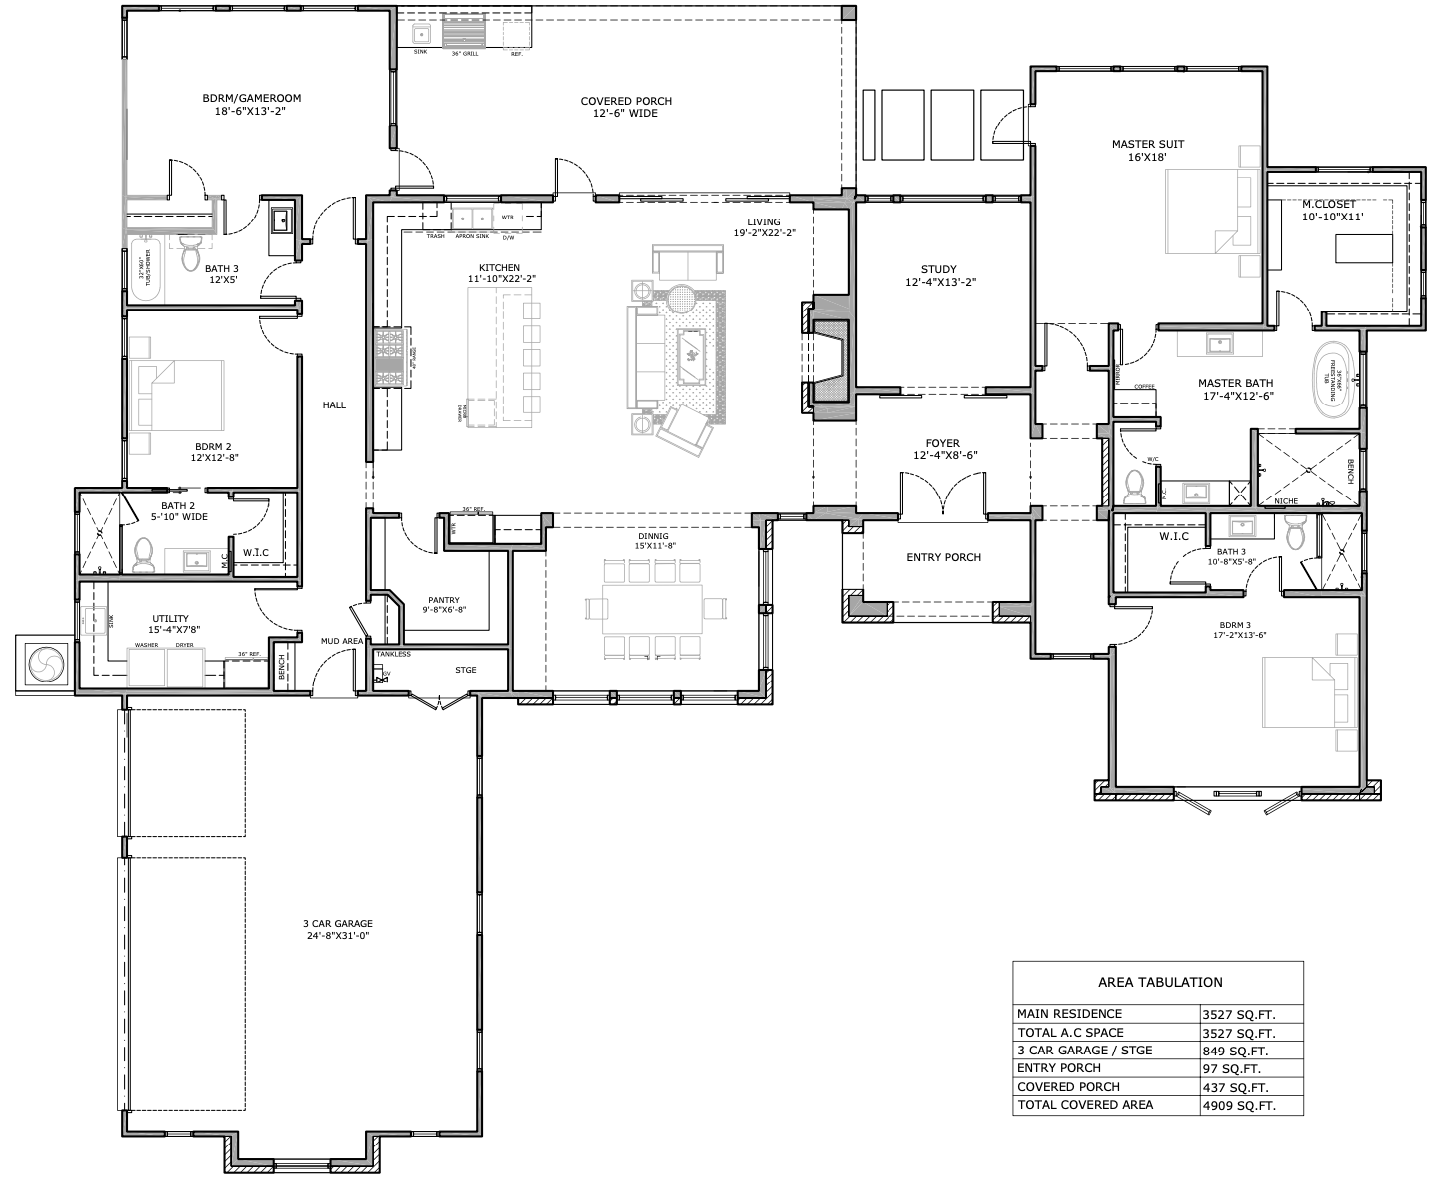 Floor Plan for our Springs at Cordillera Ranch Model Home